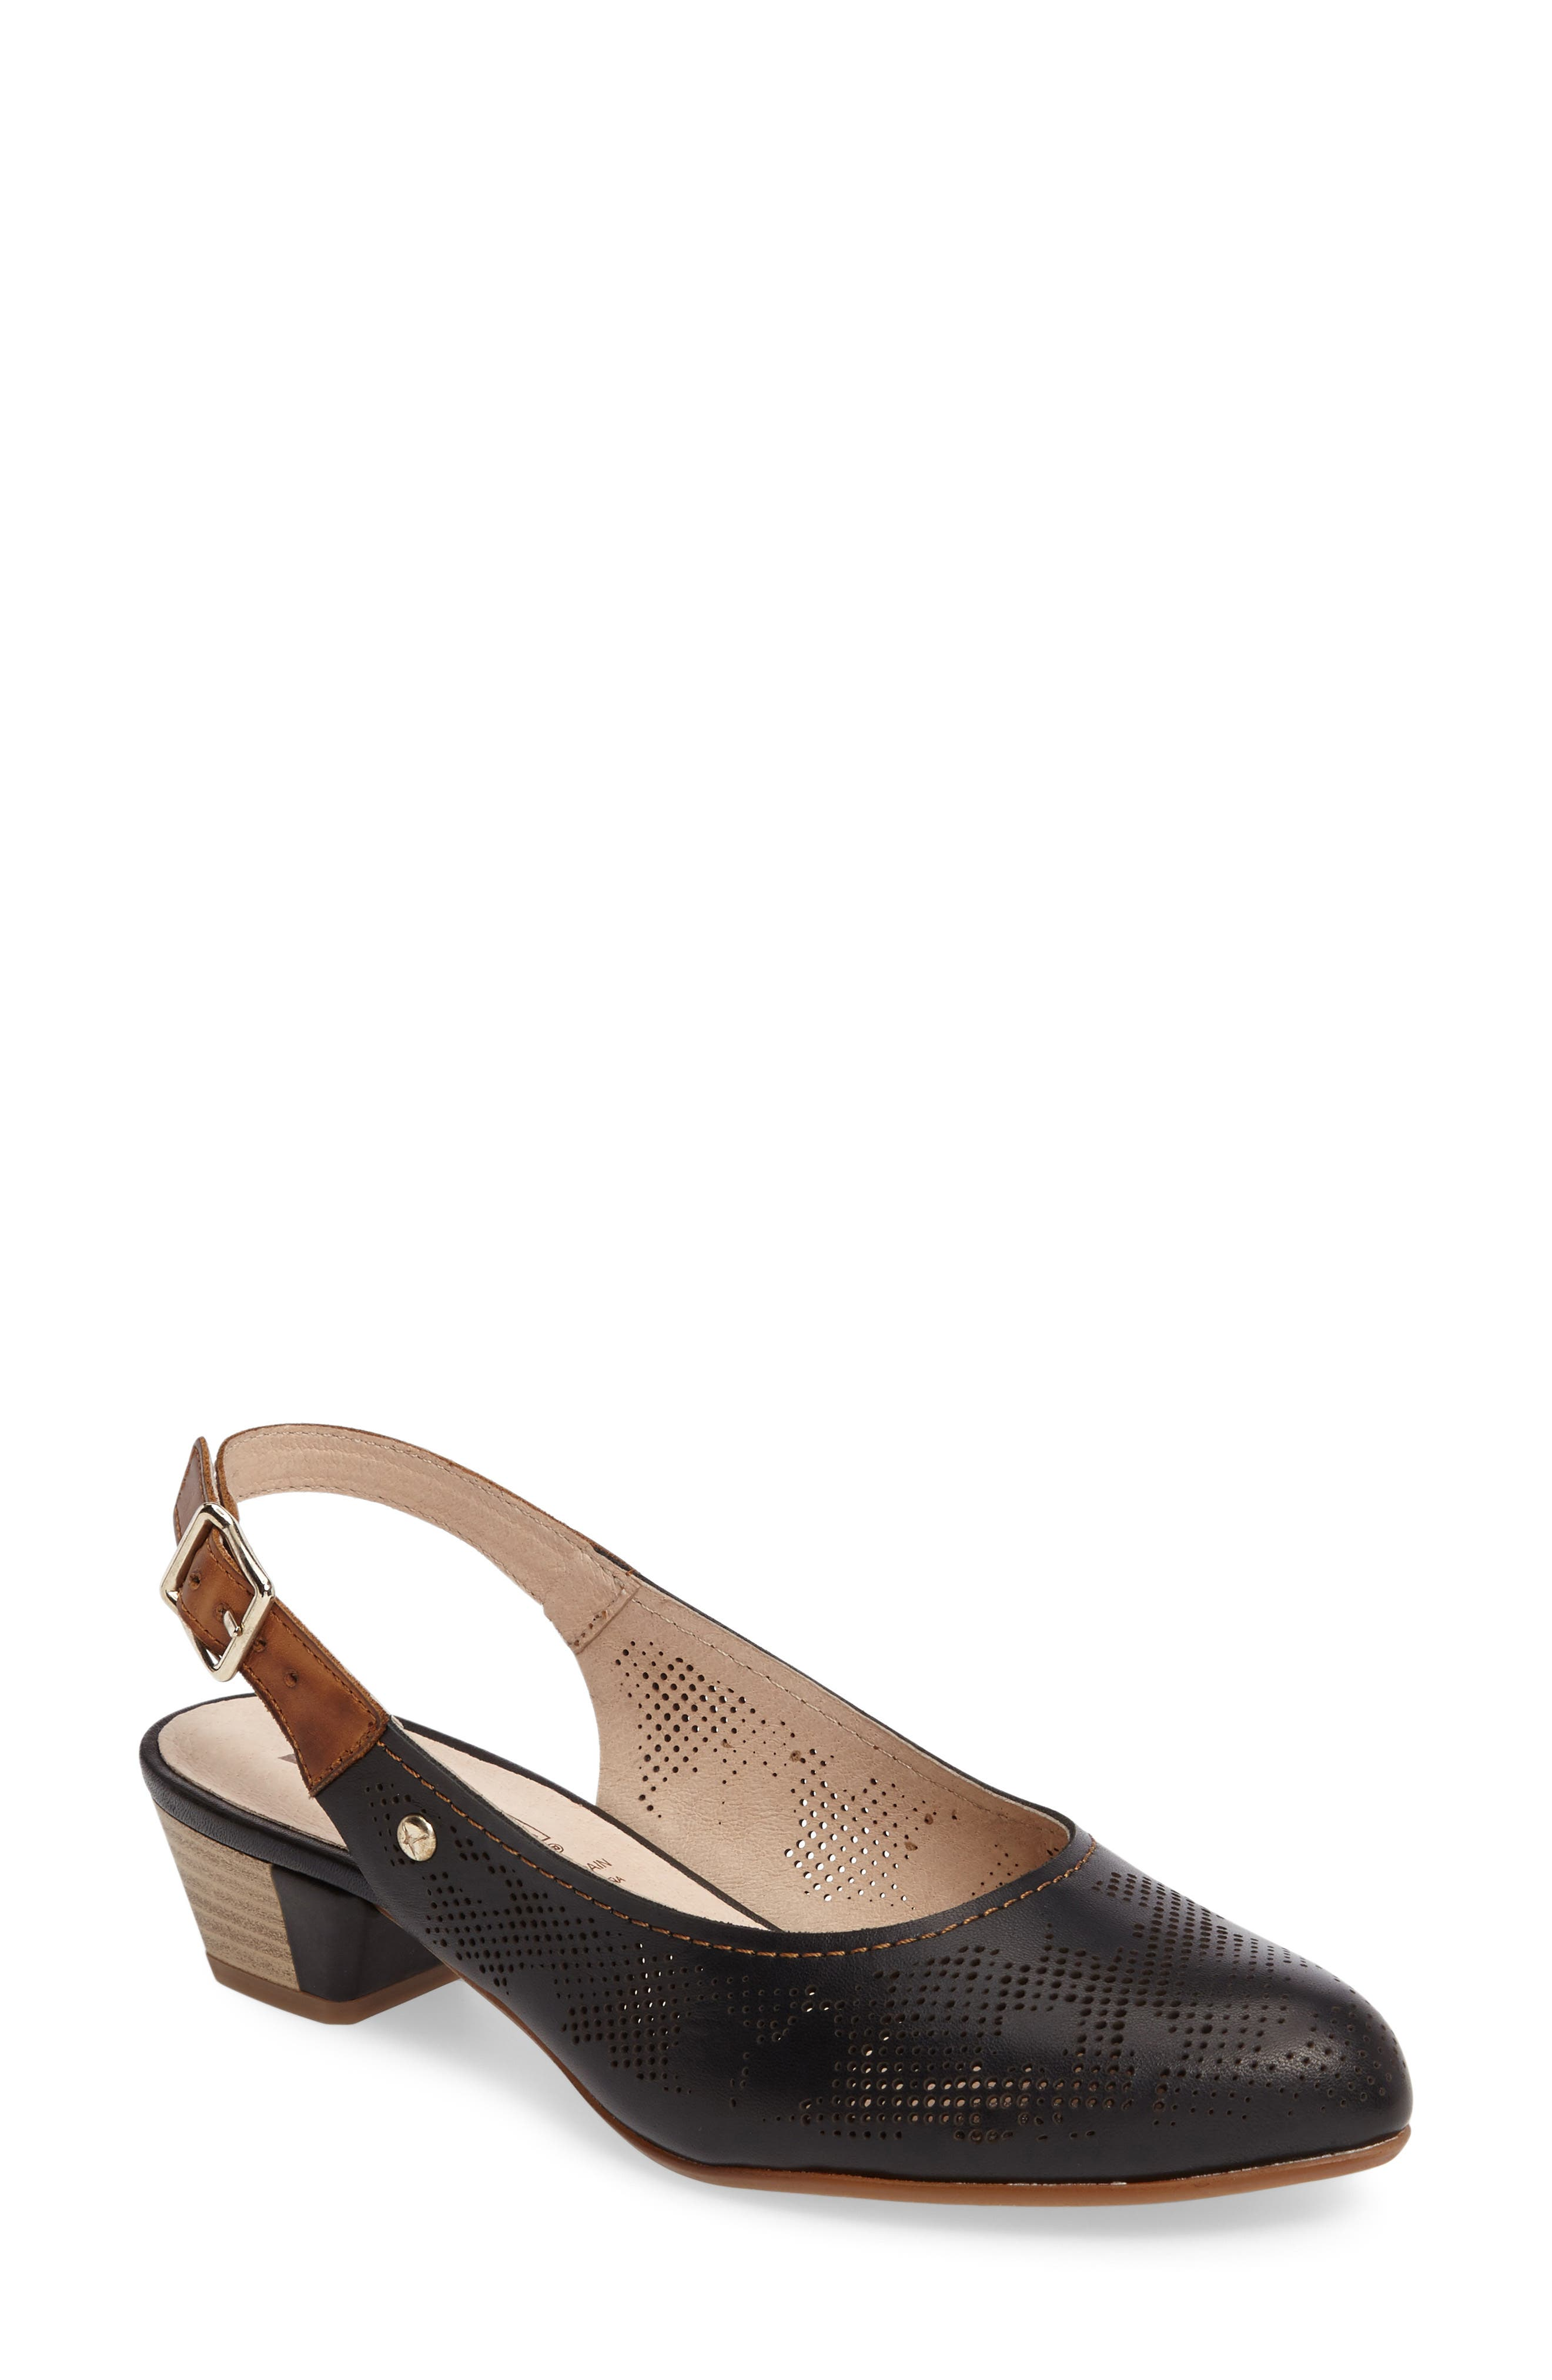 Elba Perforated Slingback Pump,                         Main,                         color,